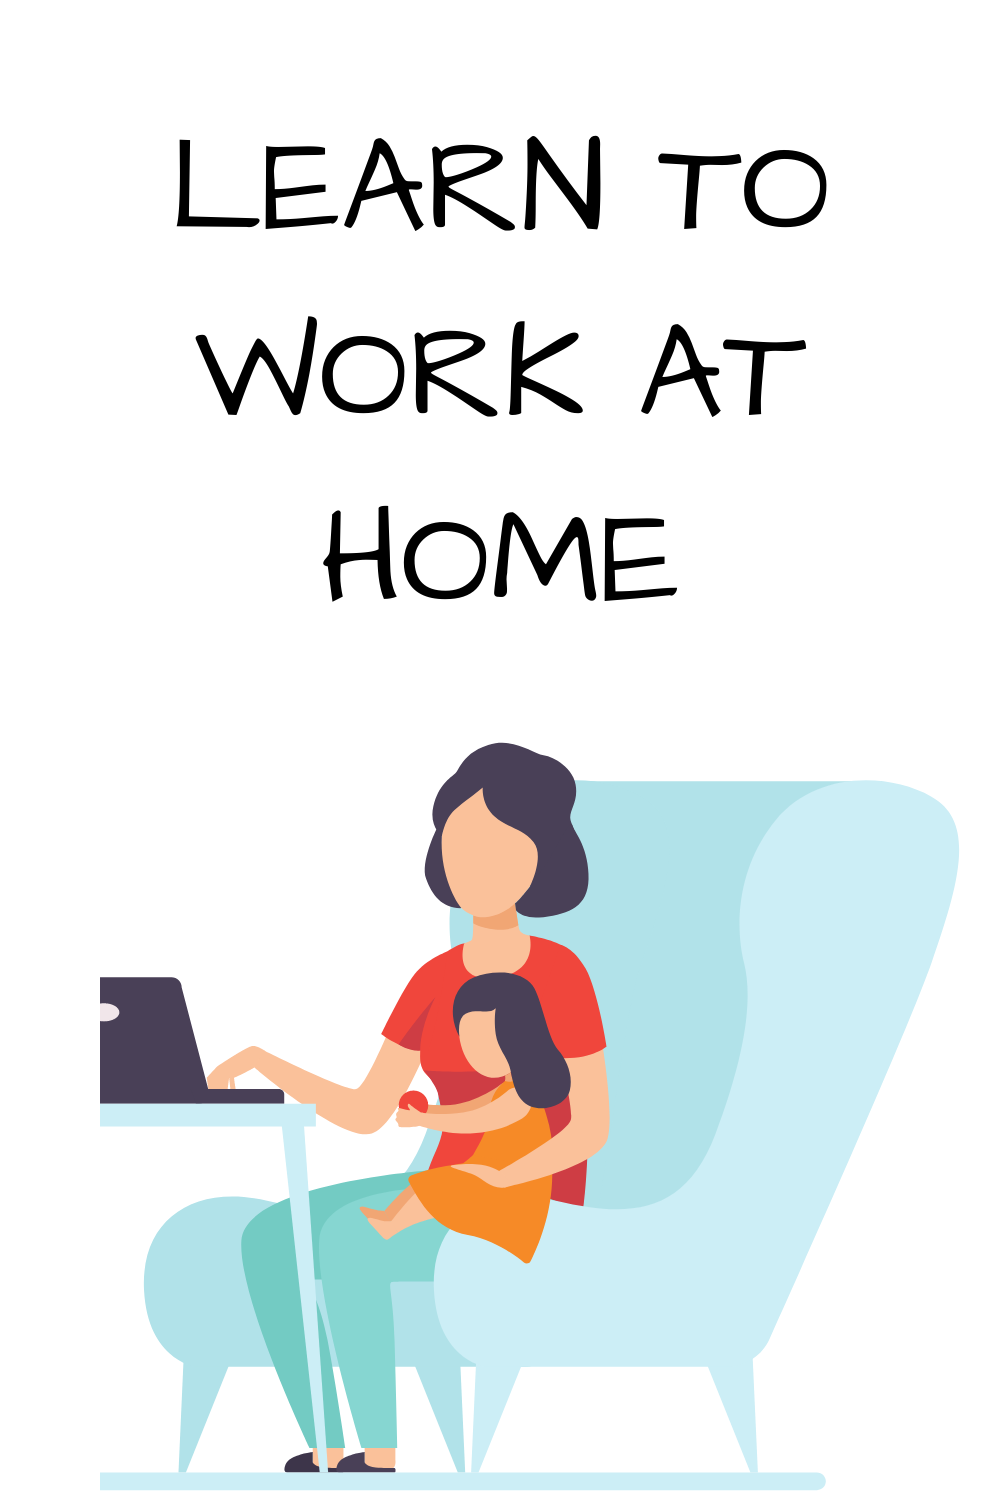 LEARN TO WORK AT HOME